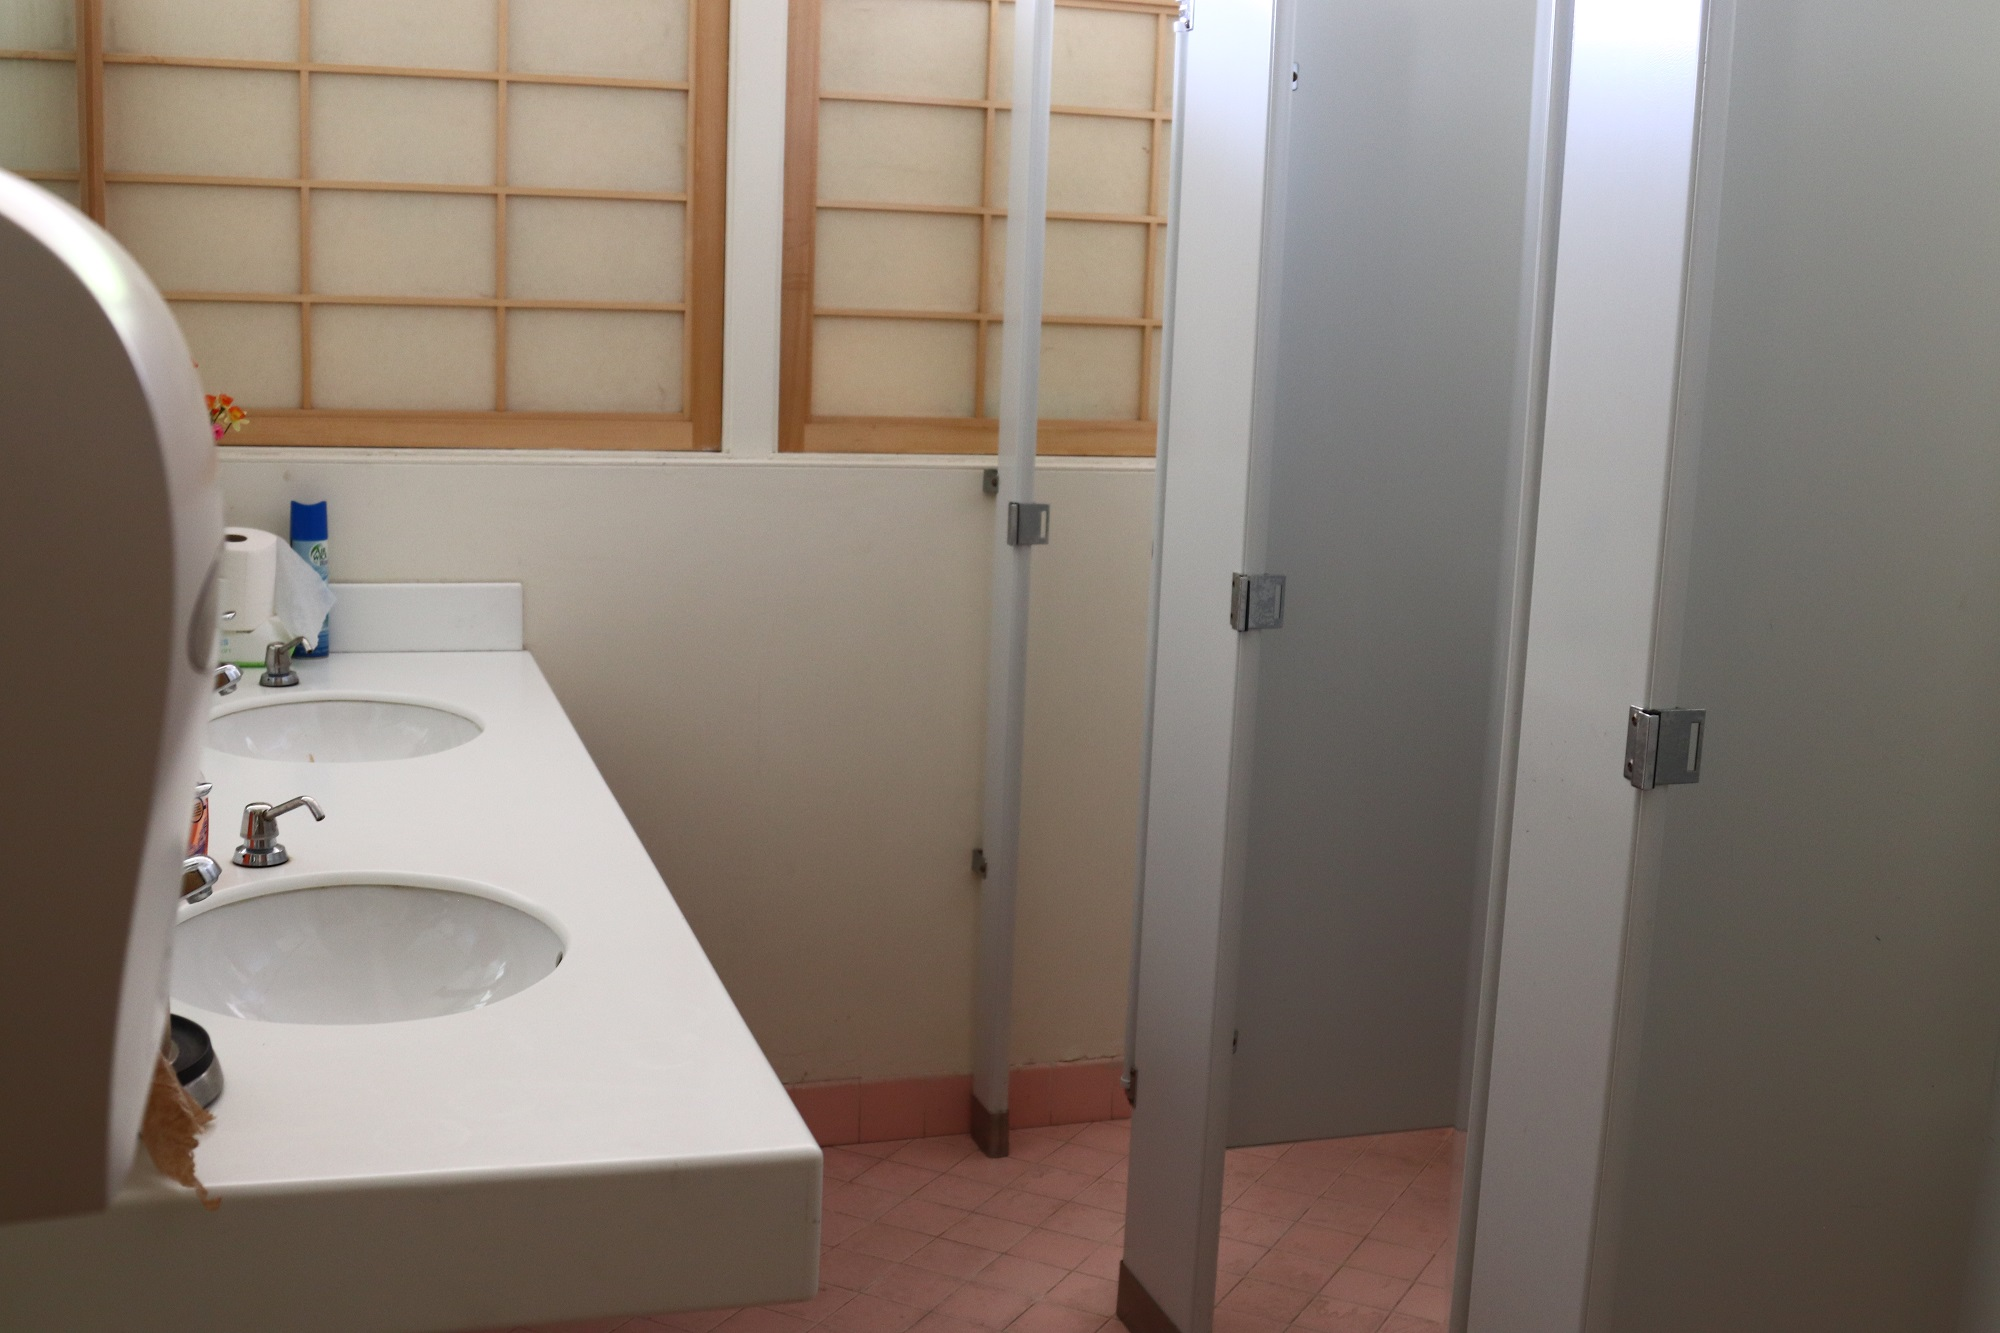 Old Restroom without space for wheelchairs and walkers